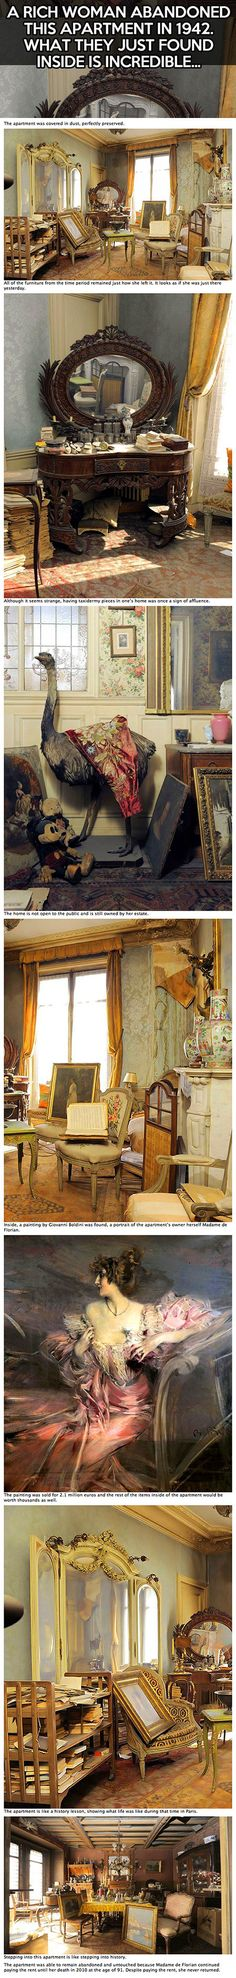 Madame de Florian was a French socialite and actress who fled to the south of France during World War II. She kept her apartment in Paris on the Right Bank near the Opéra Garnier, though, in case she wanted to return. However, she never went back to it after the war. Since 1942, the apartment has been sitting untouched, until recently when an auctioneer entered her apartment. What he found was a time capsule, full of treasures.